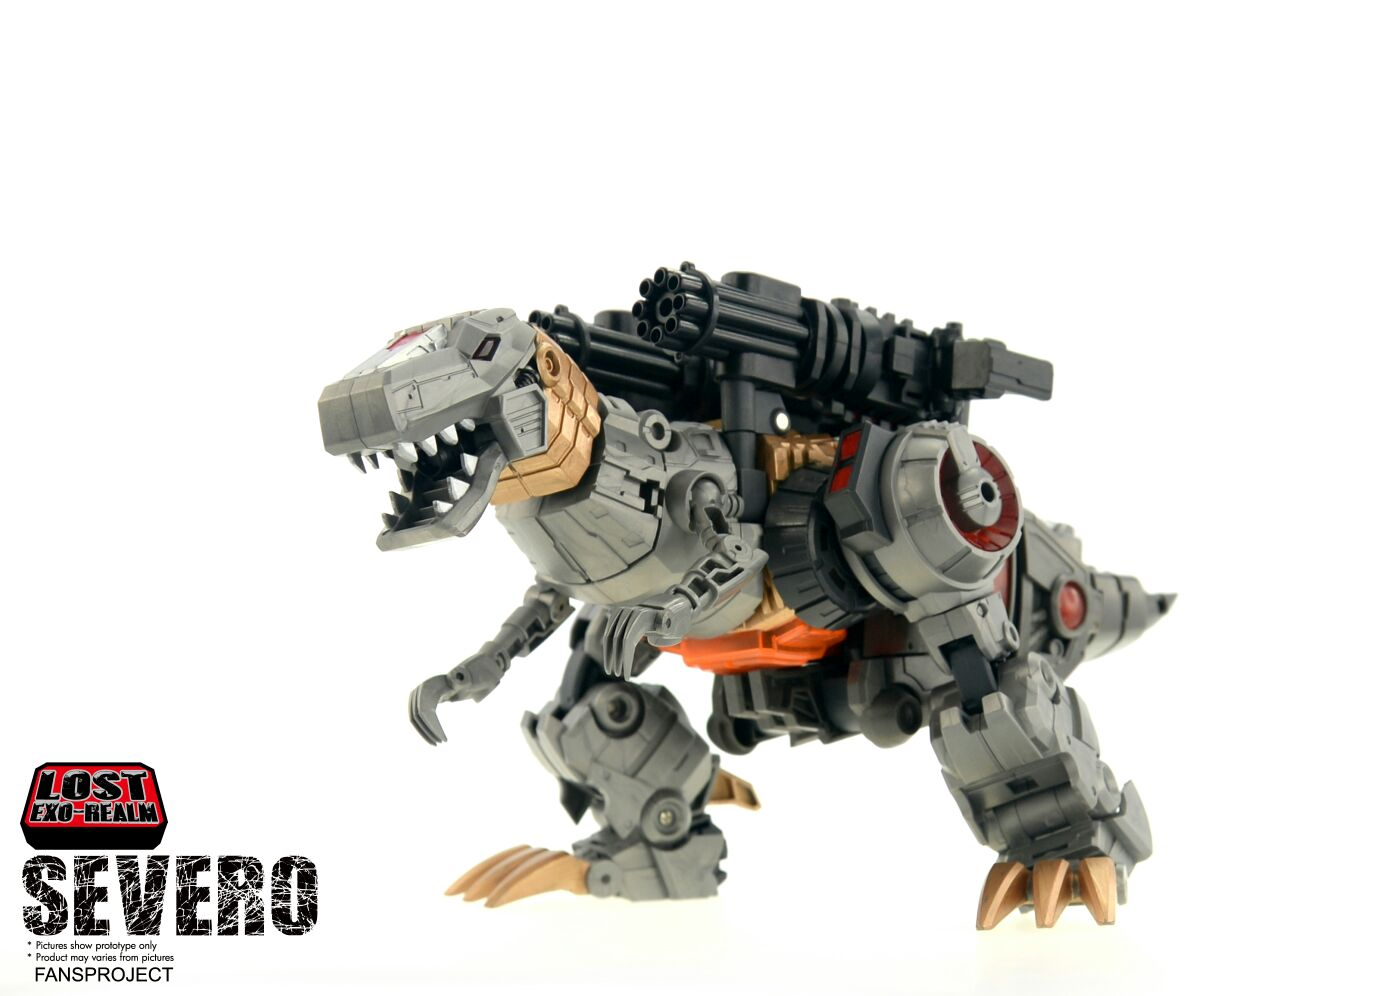 [FansProject] Produit Tiers - Jouets LER (Lost Exo Realm) - aka Dinobots - Page 2 Severo-3